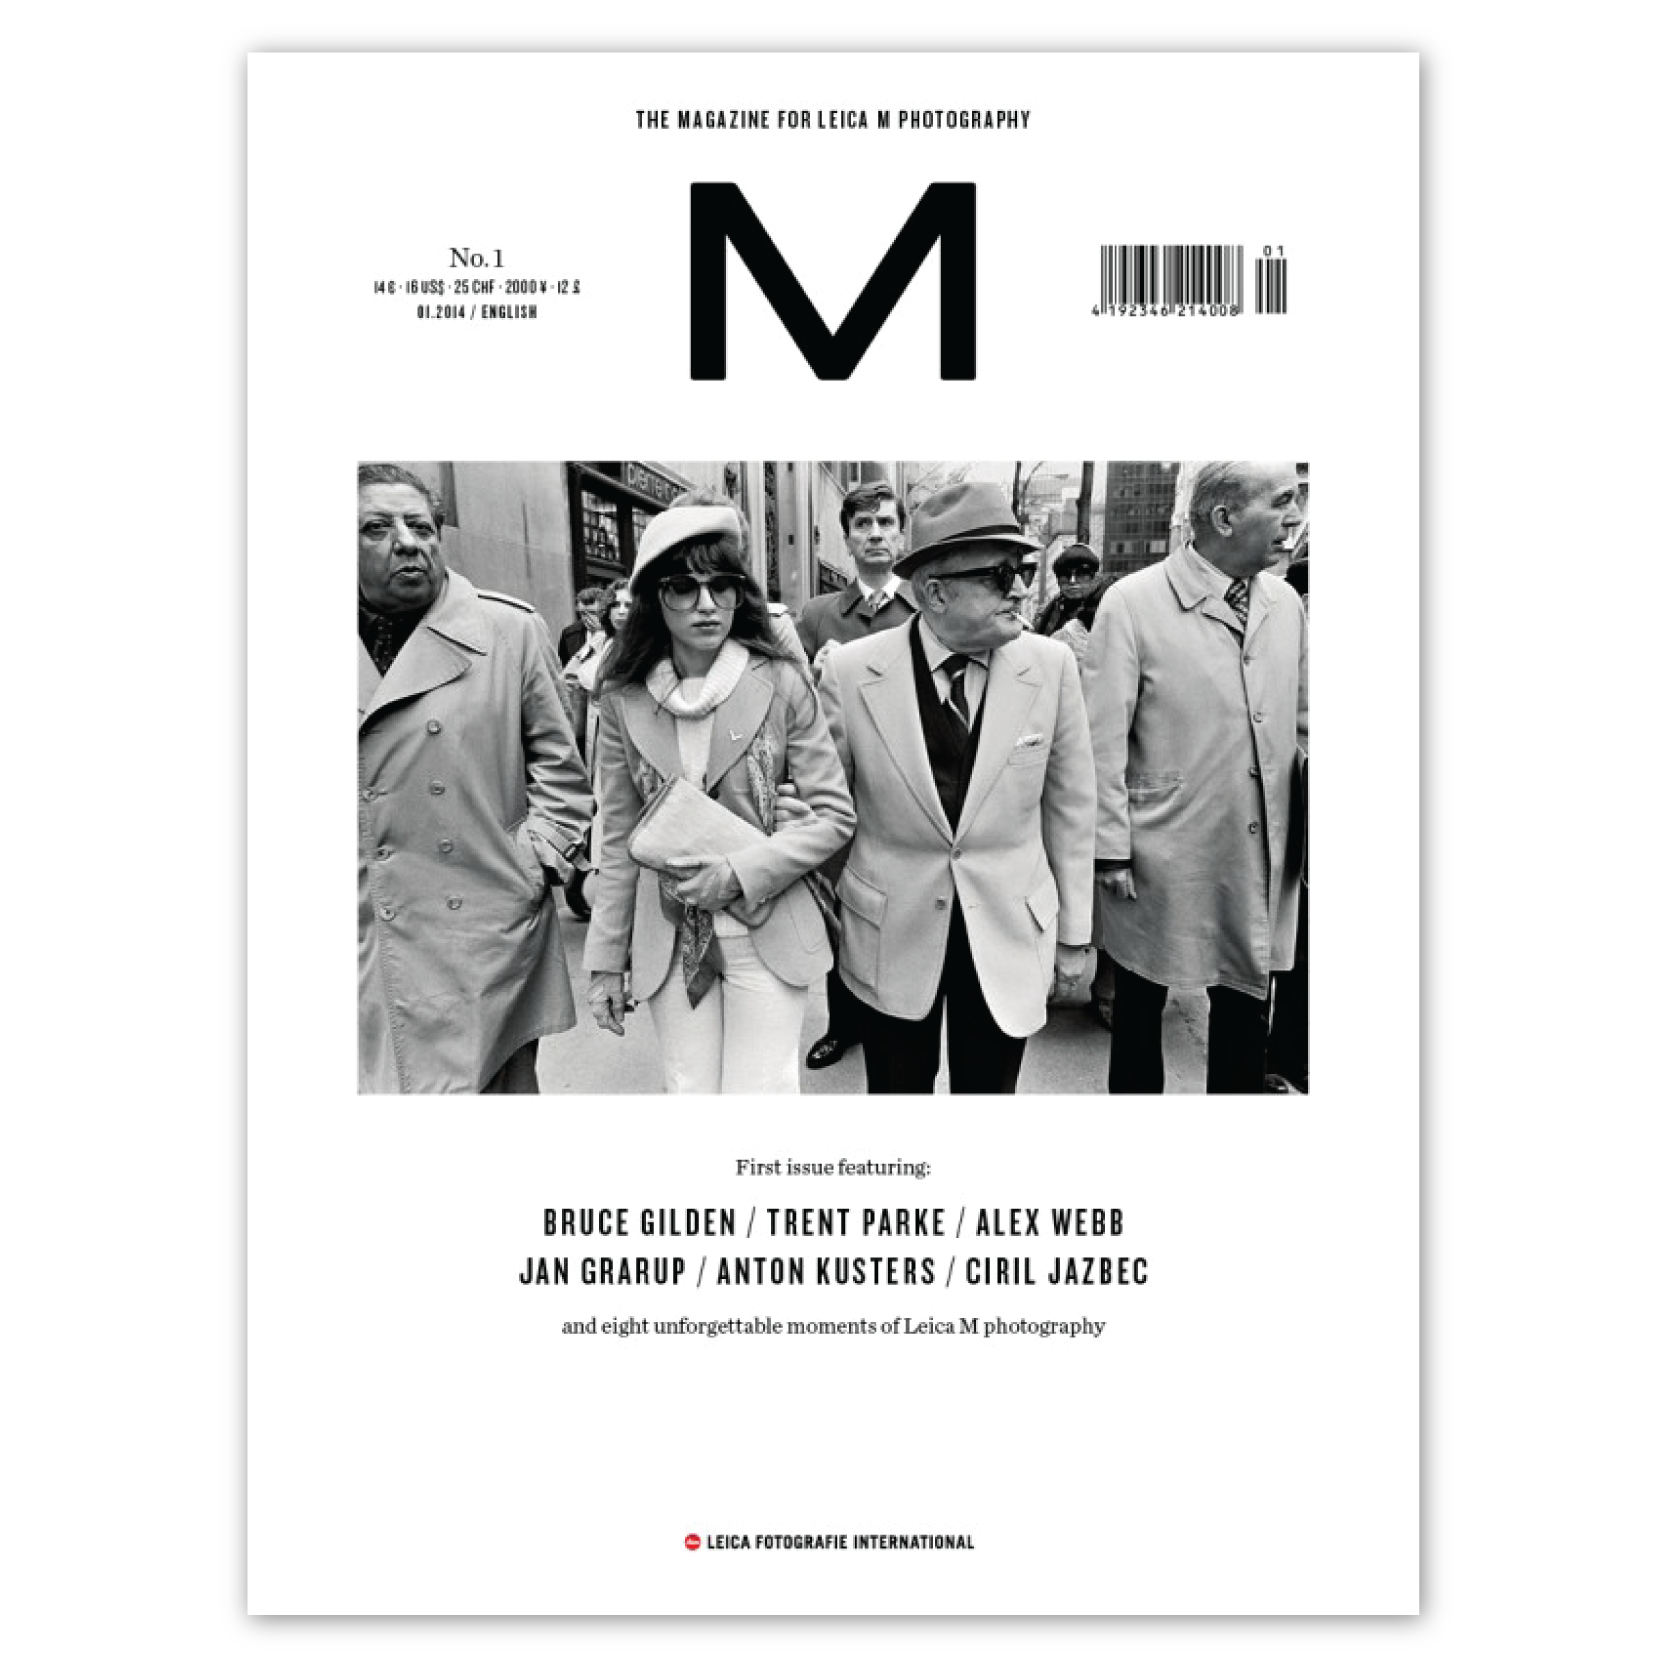 LFI M Magazine No. 1 featuring Bruce Gilden, Trent Parke, Alxe Webb  & Others